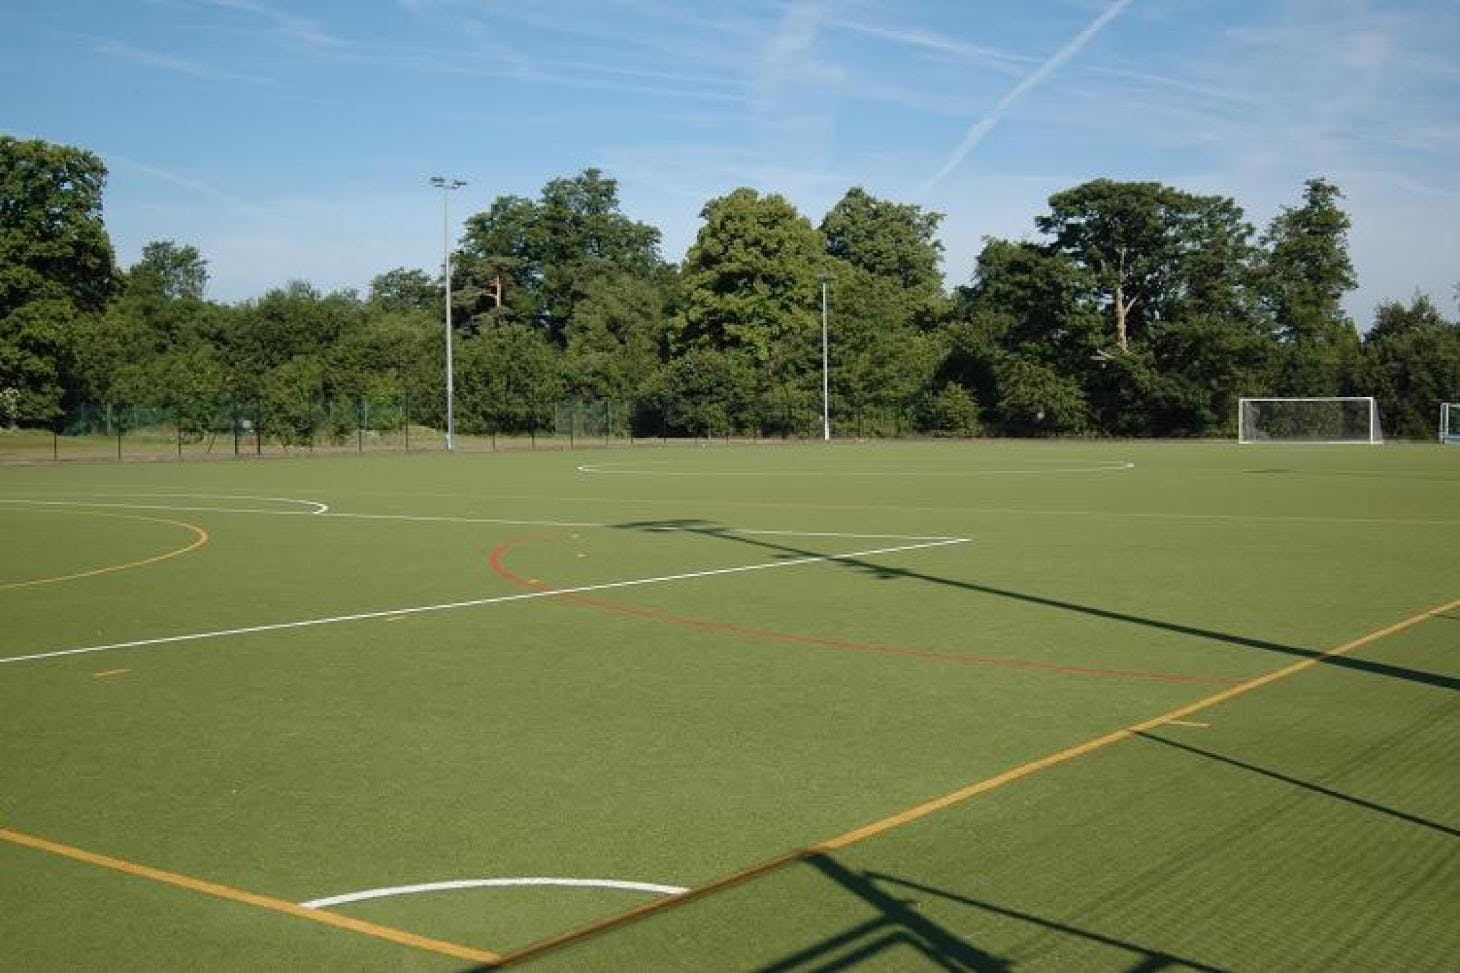 Croydon Sports Club 11 a side | Grass football pitch